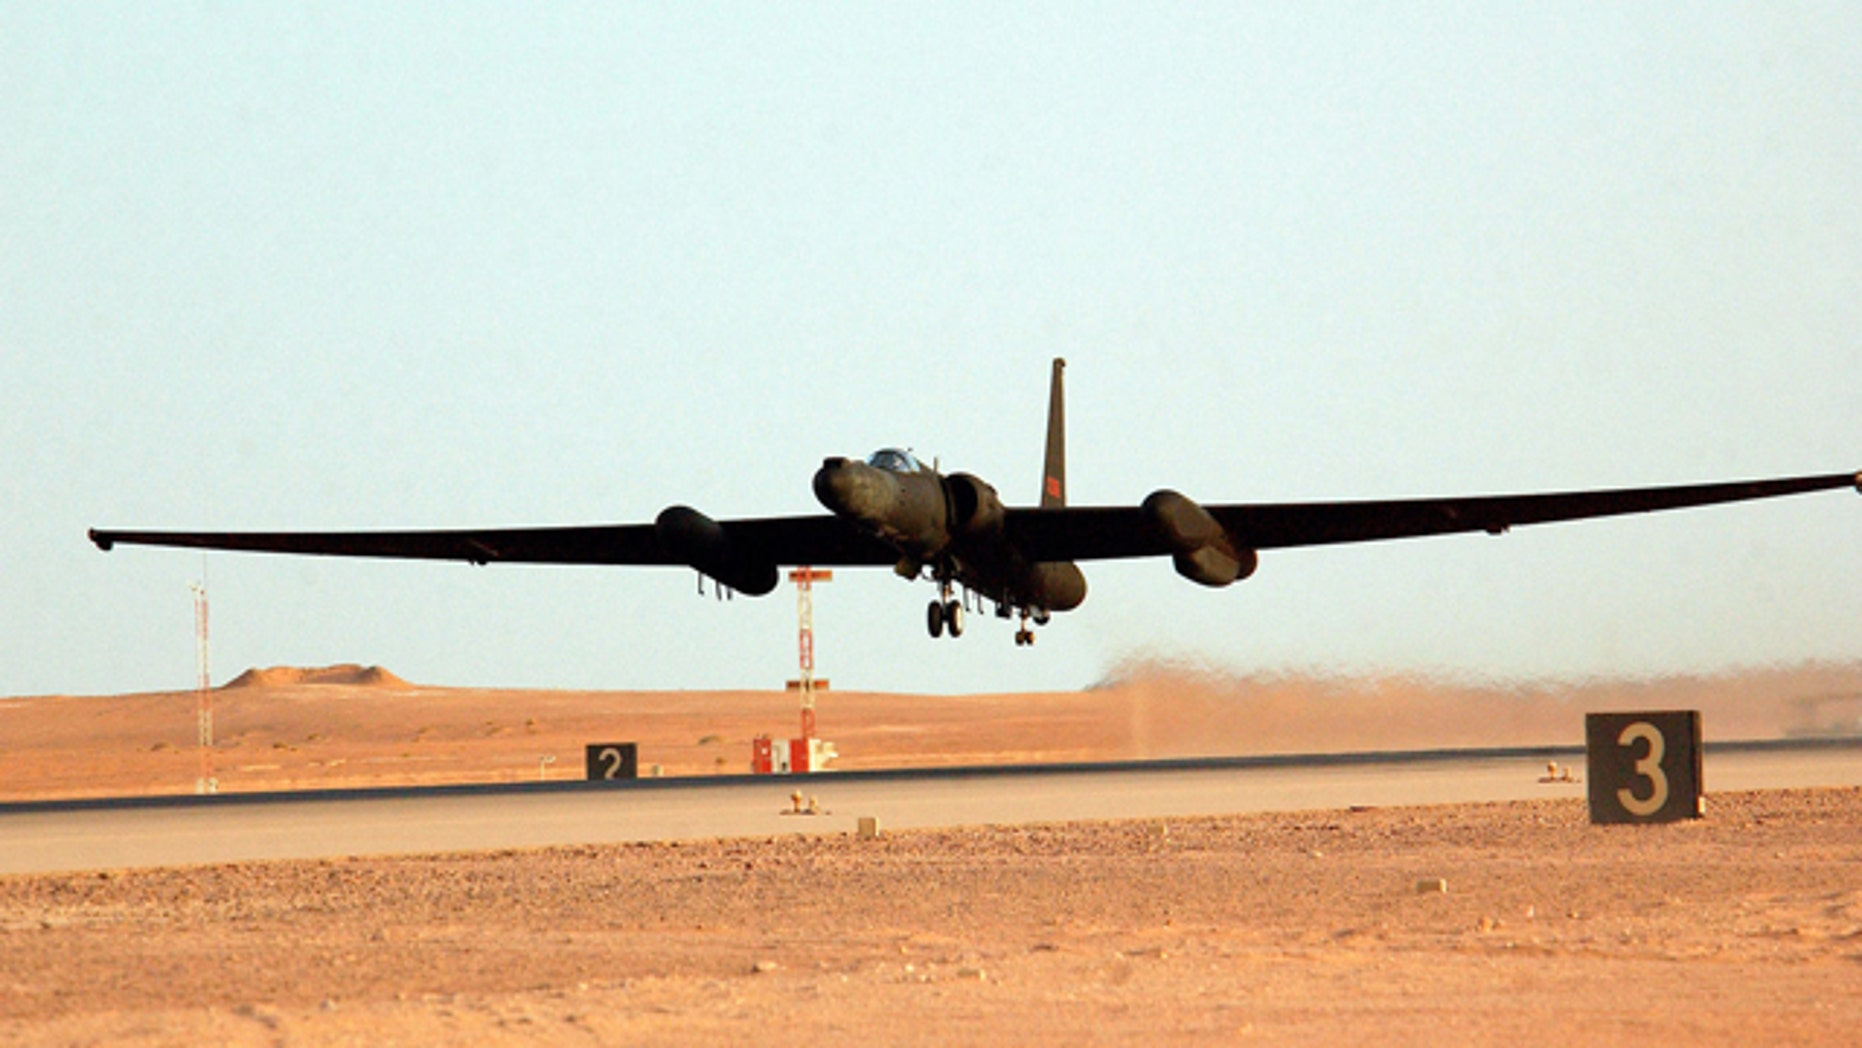 A US Air Force U-2R high altitude surveillance aircraft takes off from forward-deployed location supporting Operation Iraqi Freedom in 2003.